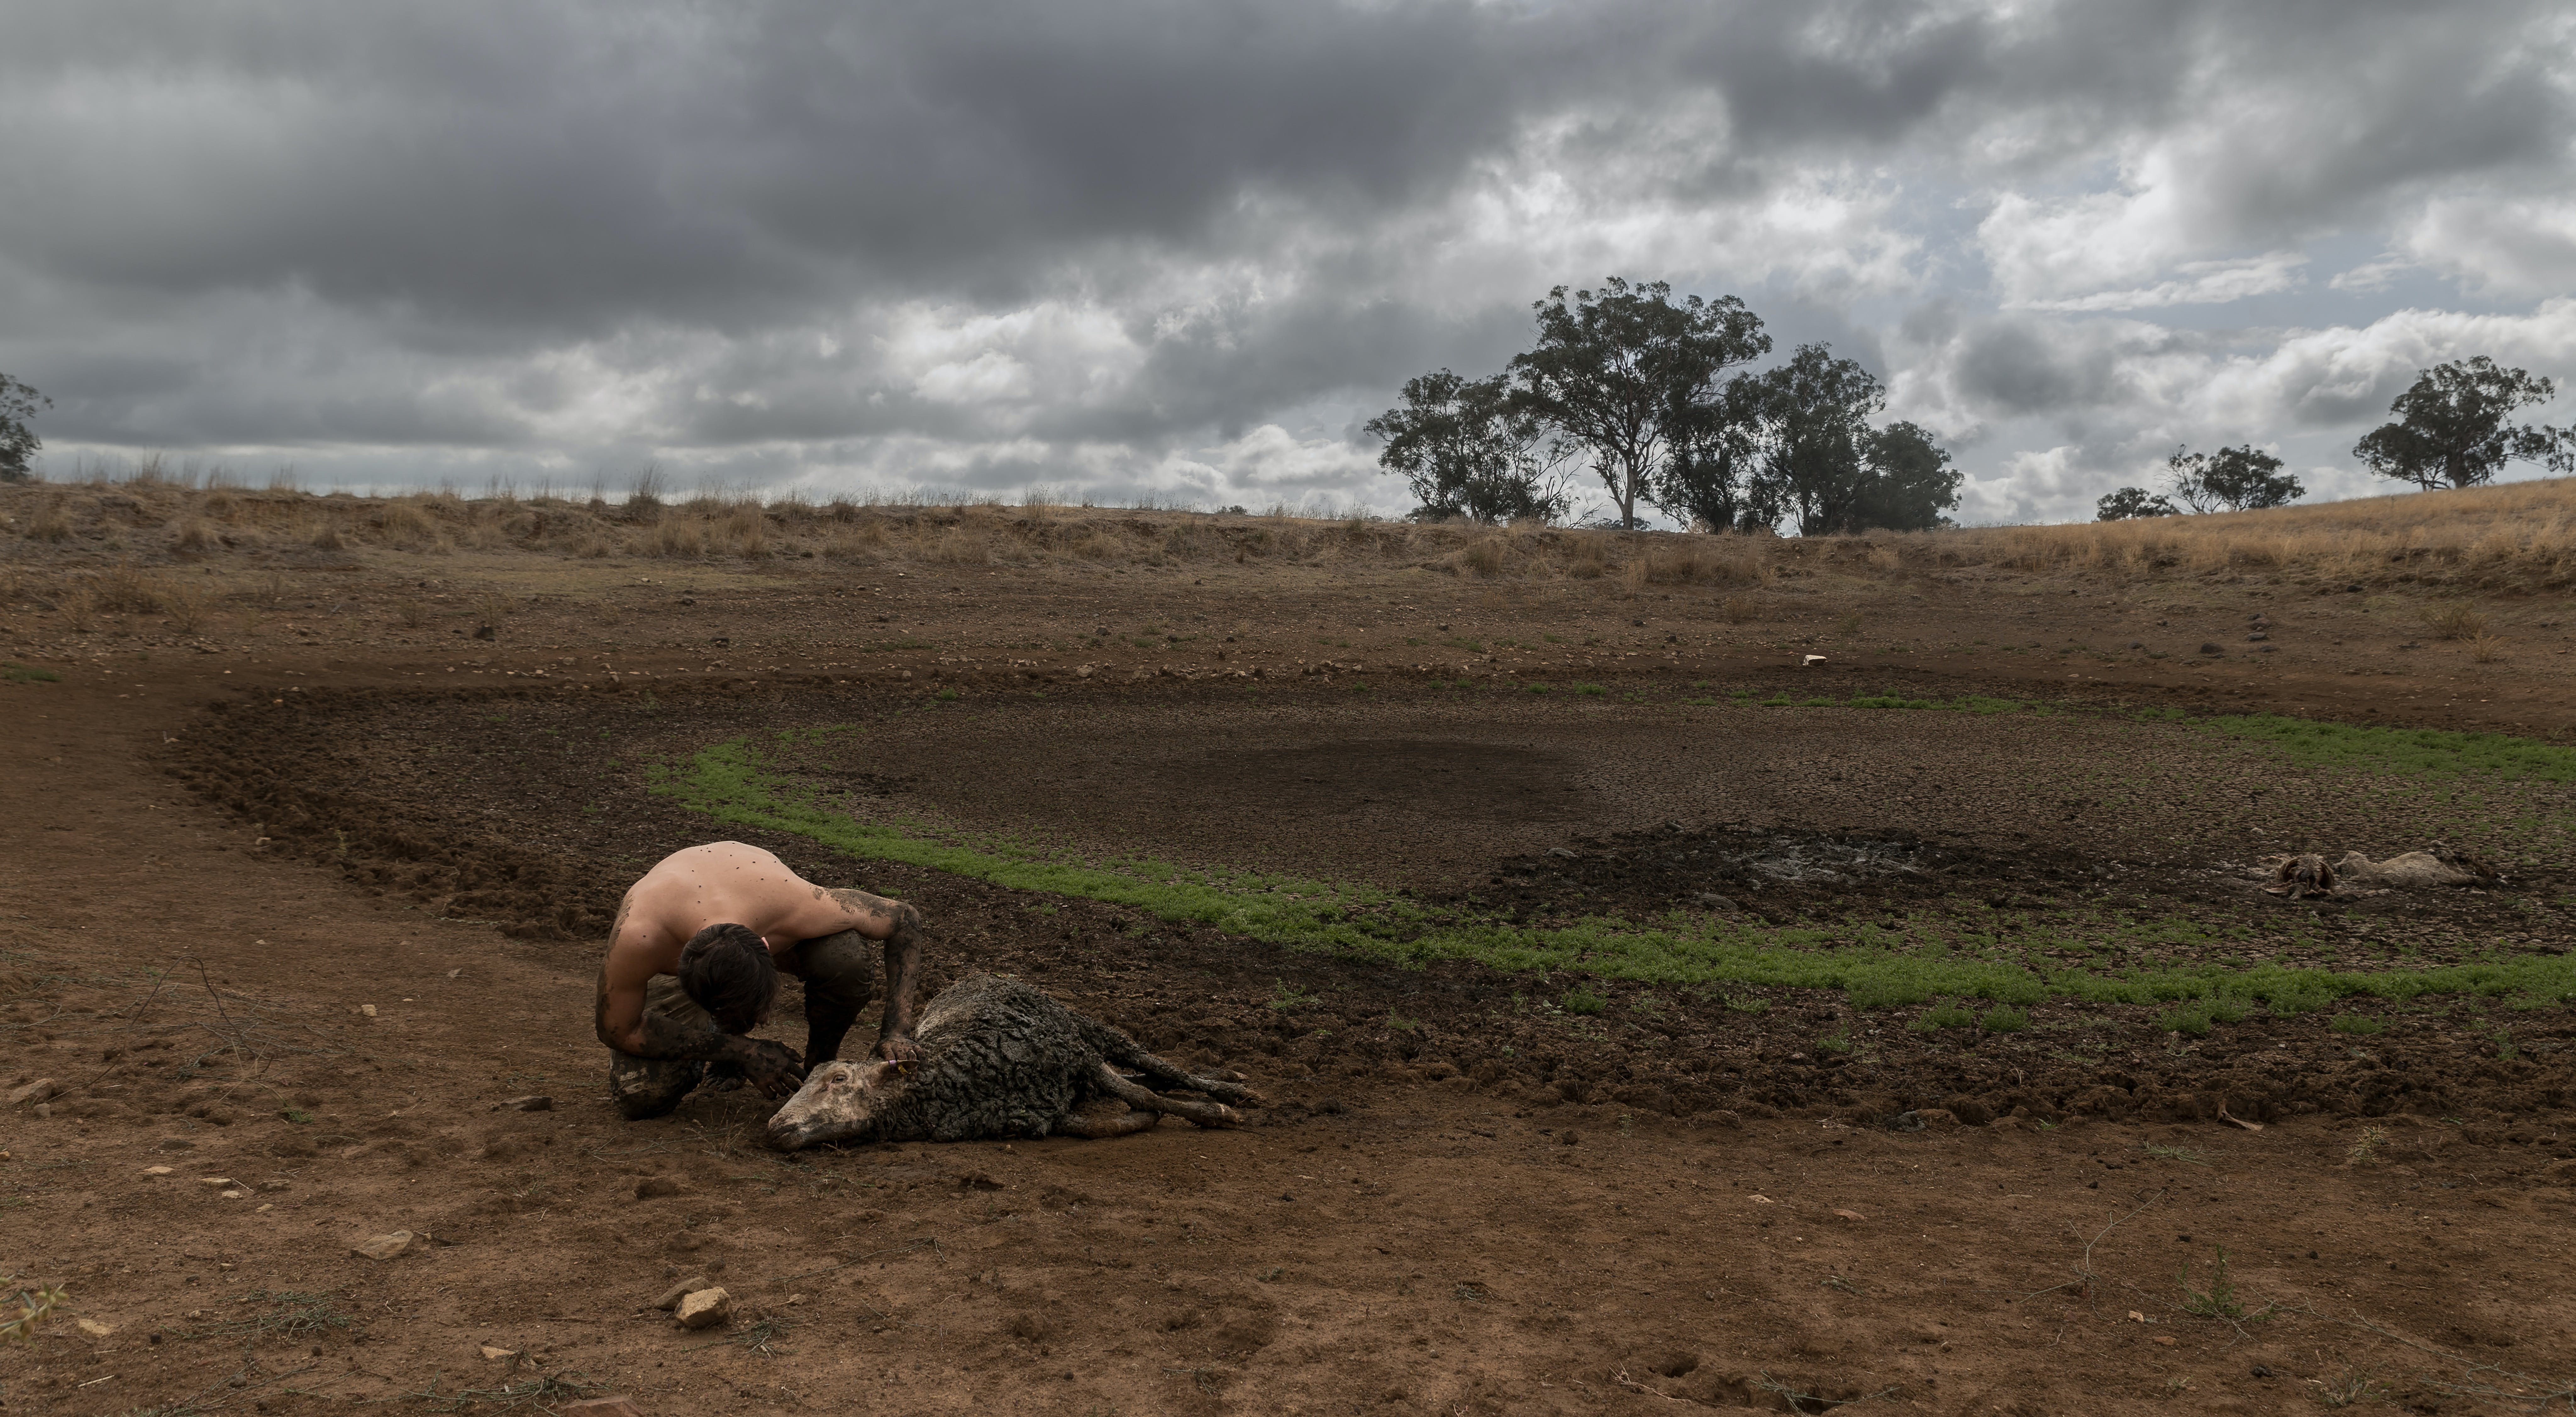 A man examines a sick sheep laying by a dried up pond (the sheep survives).